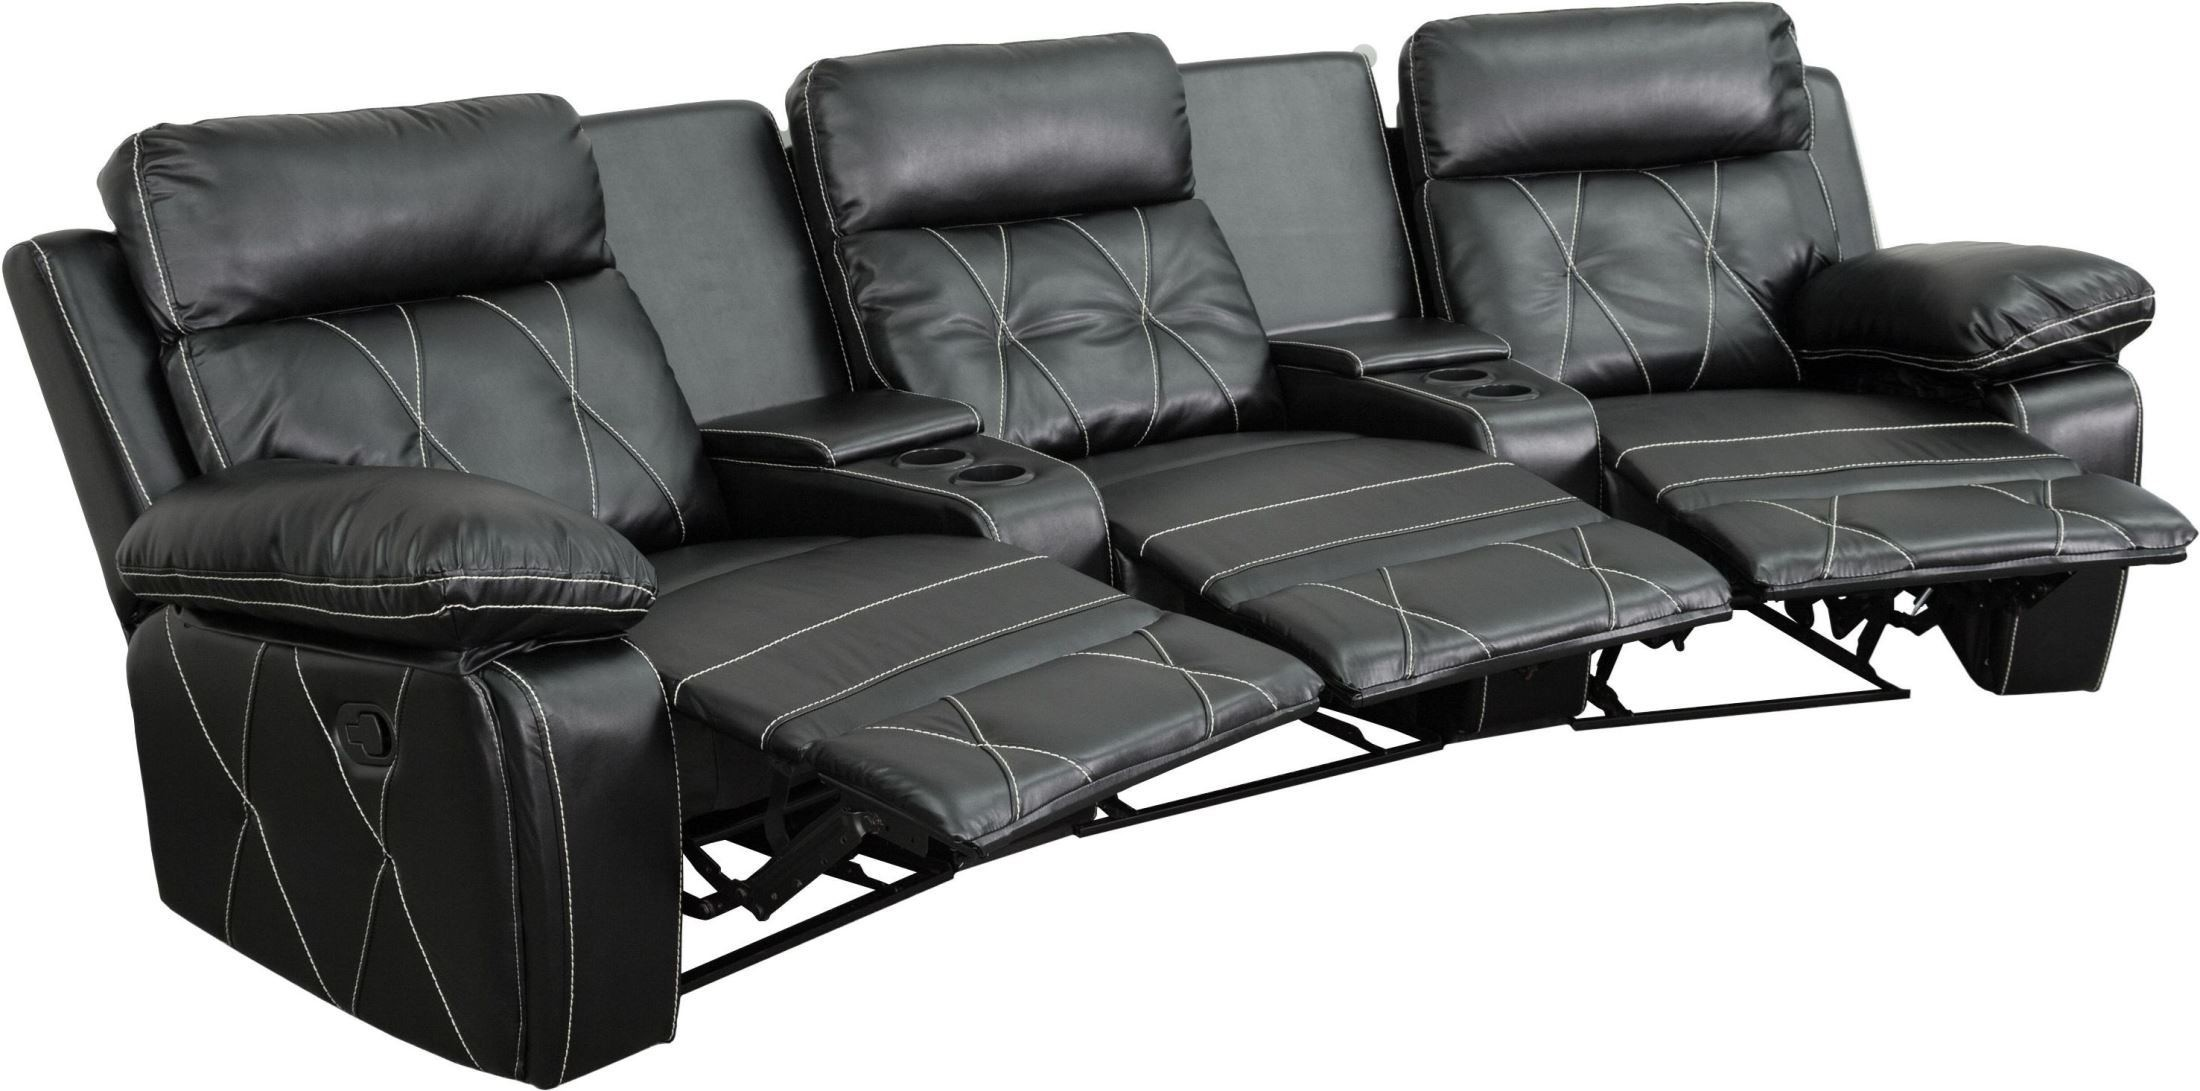 2 seat theater chairs floral chair covers ebay reel comfort series 3 reclining black leather